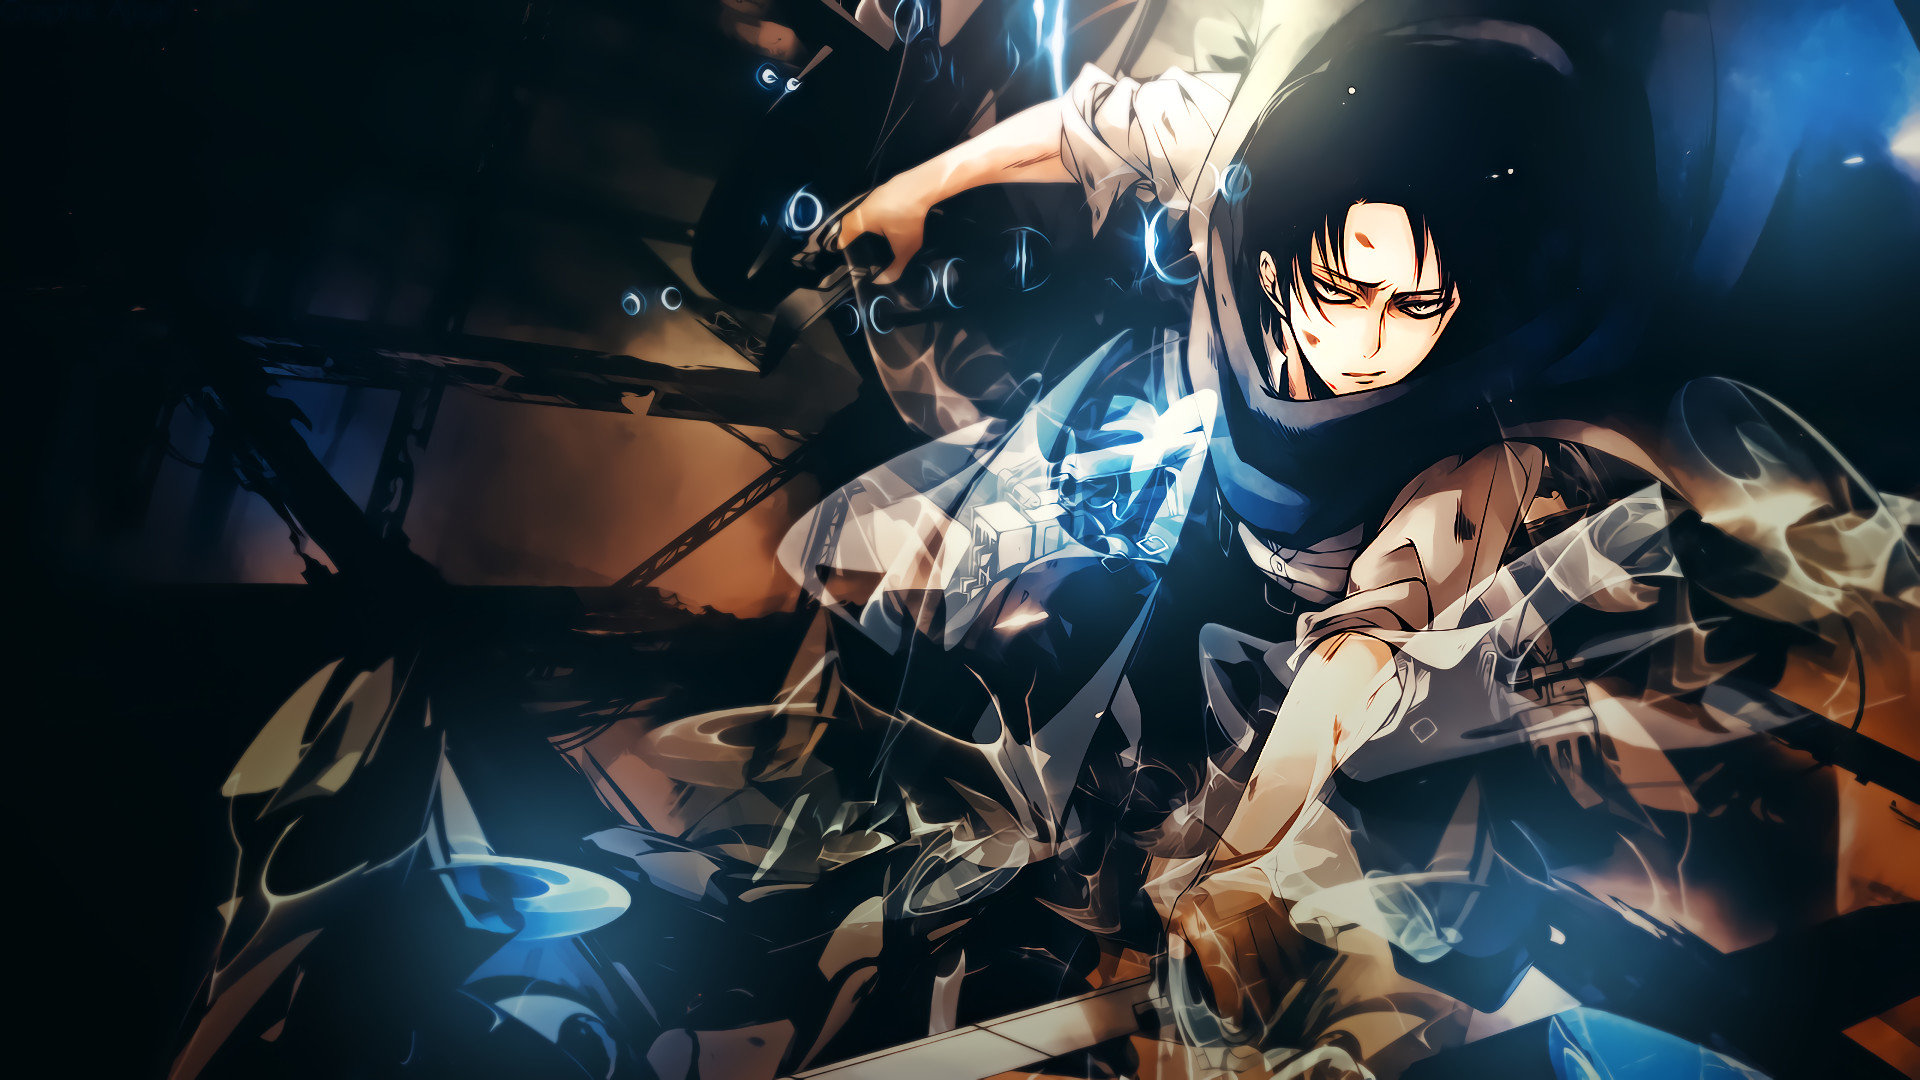 Levi Ackerman Wallpapers 1920x1080 Full Hd 1080p Desktop Backgrounds